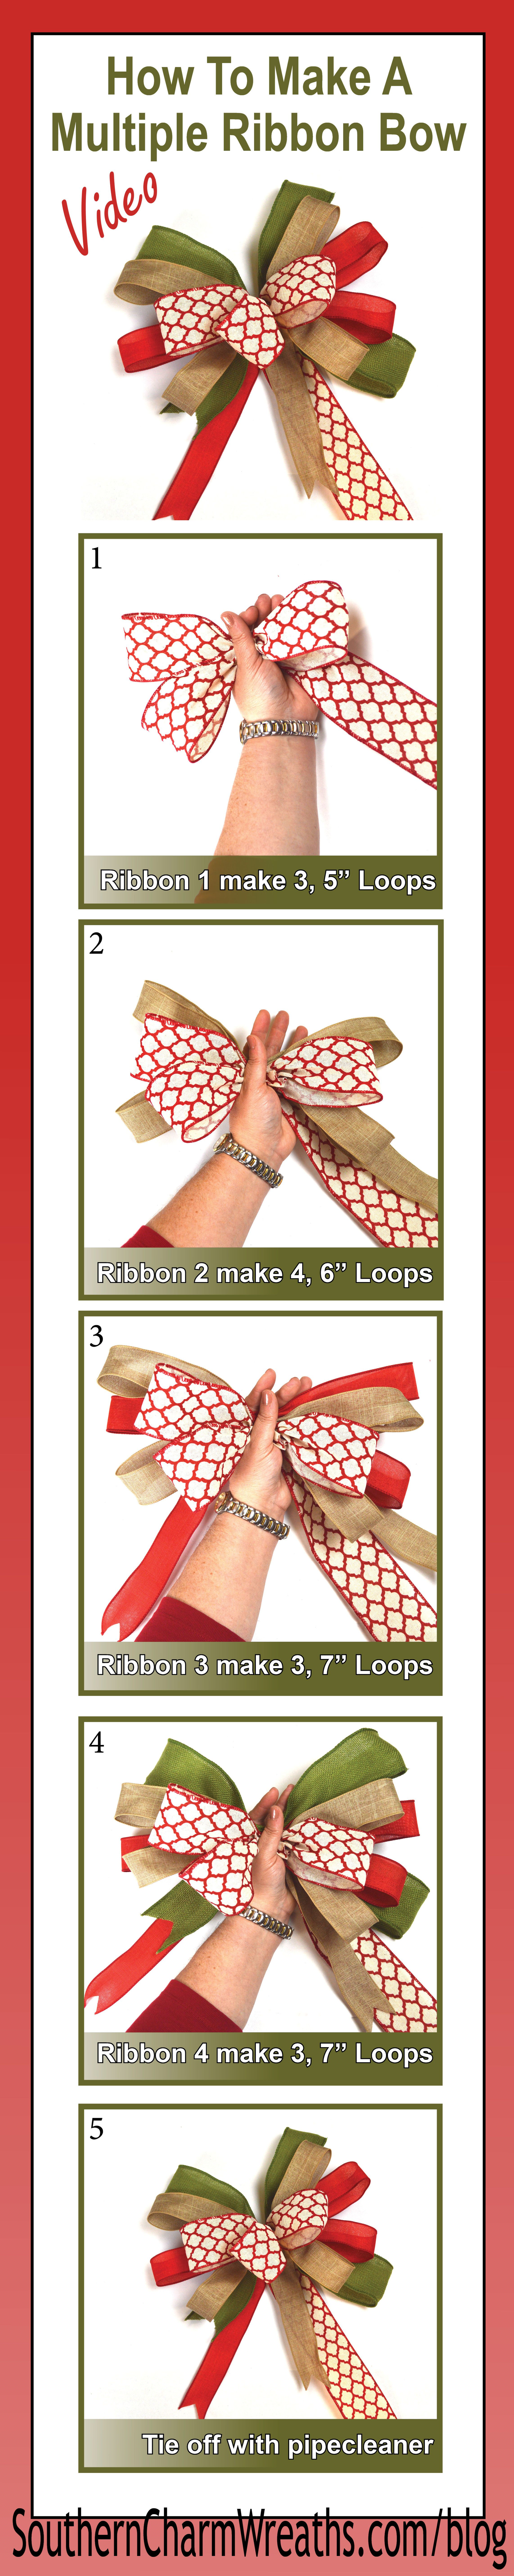 How to make a bow with two ribbons for a wreath